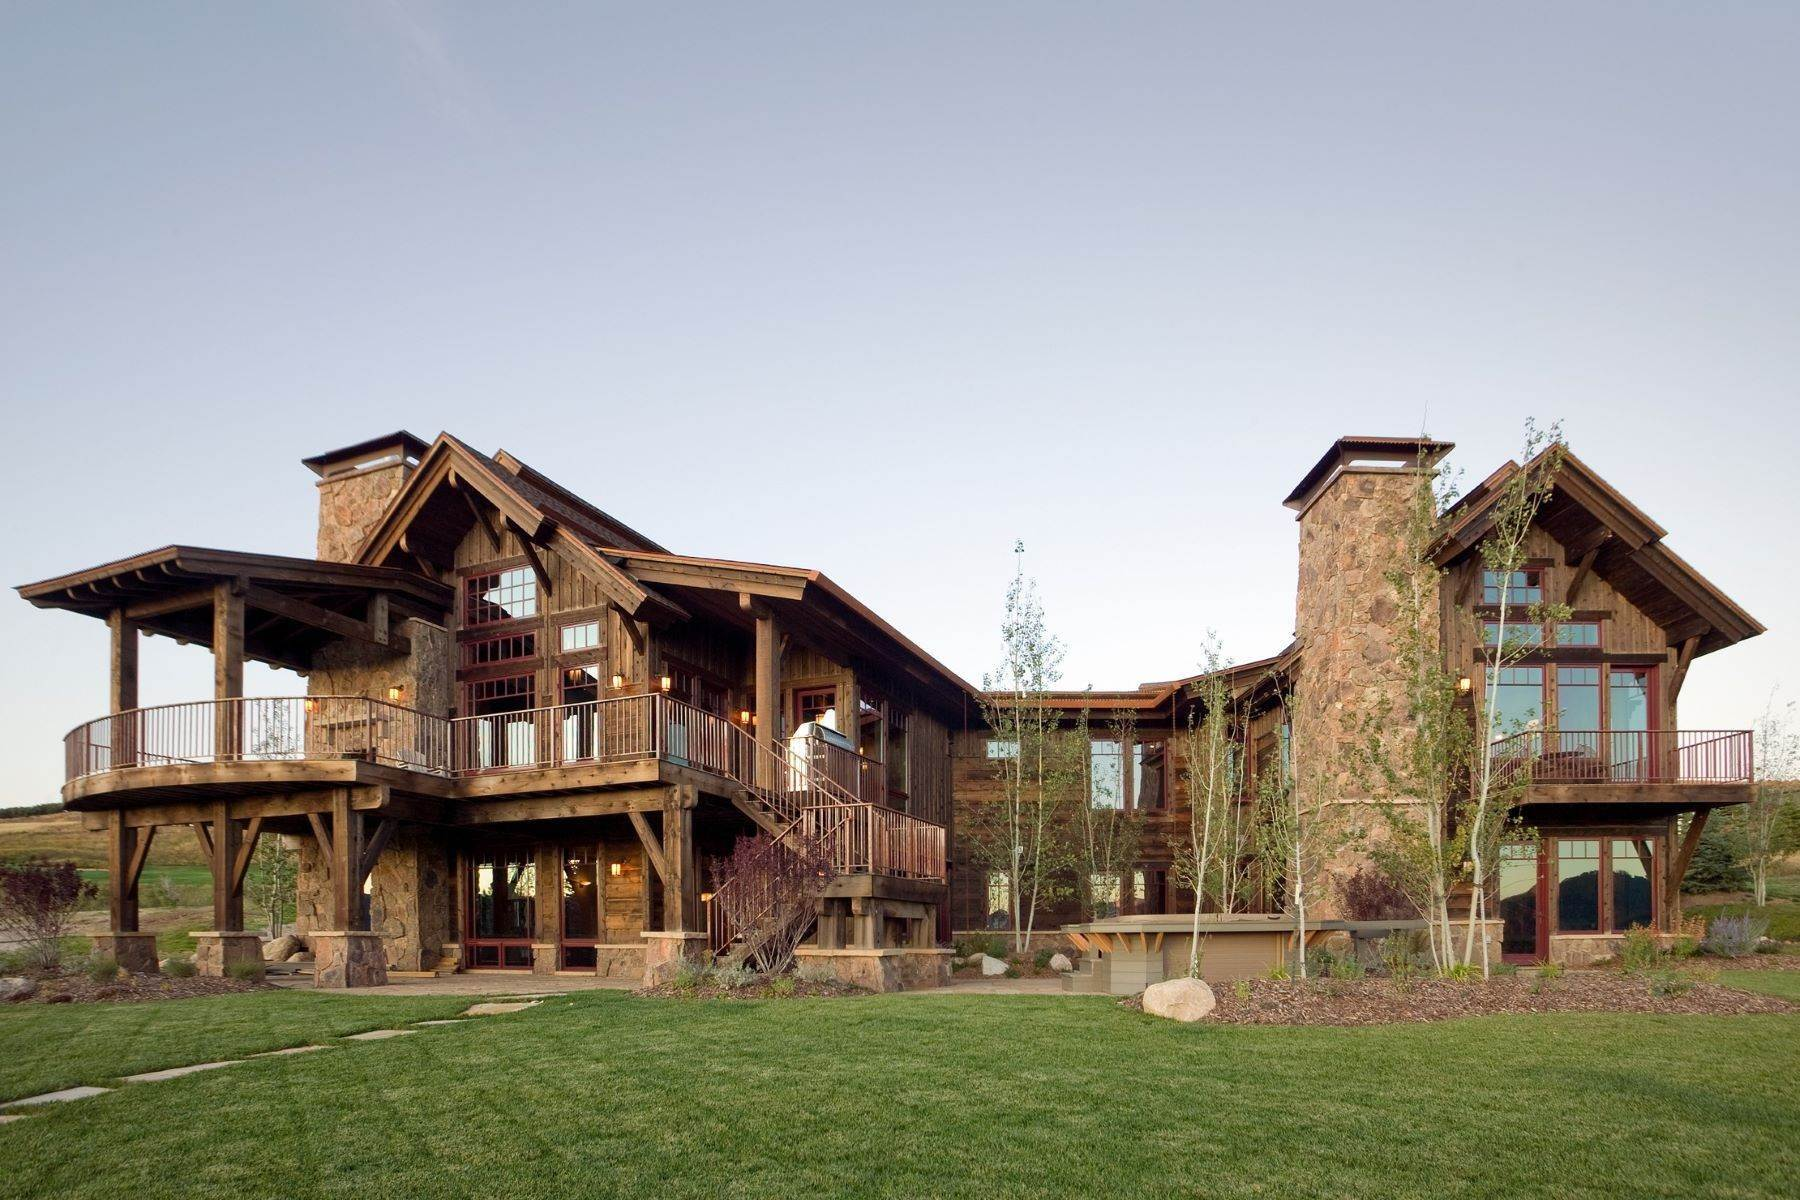 Single Family Homes for Sale at Beautiful Home at Catamount Ranch 33640 Catamount Drive Steamboat Springs, Colorado 80487 United States